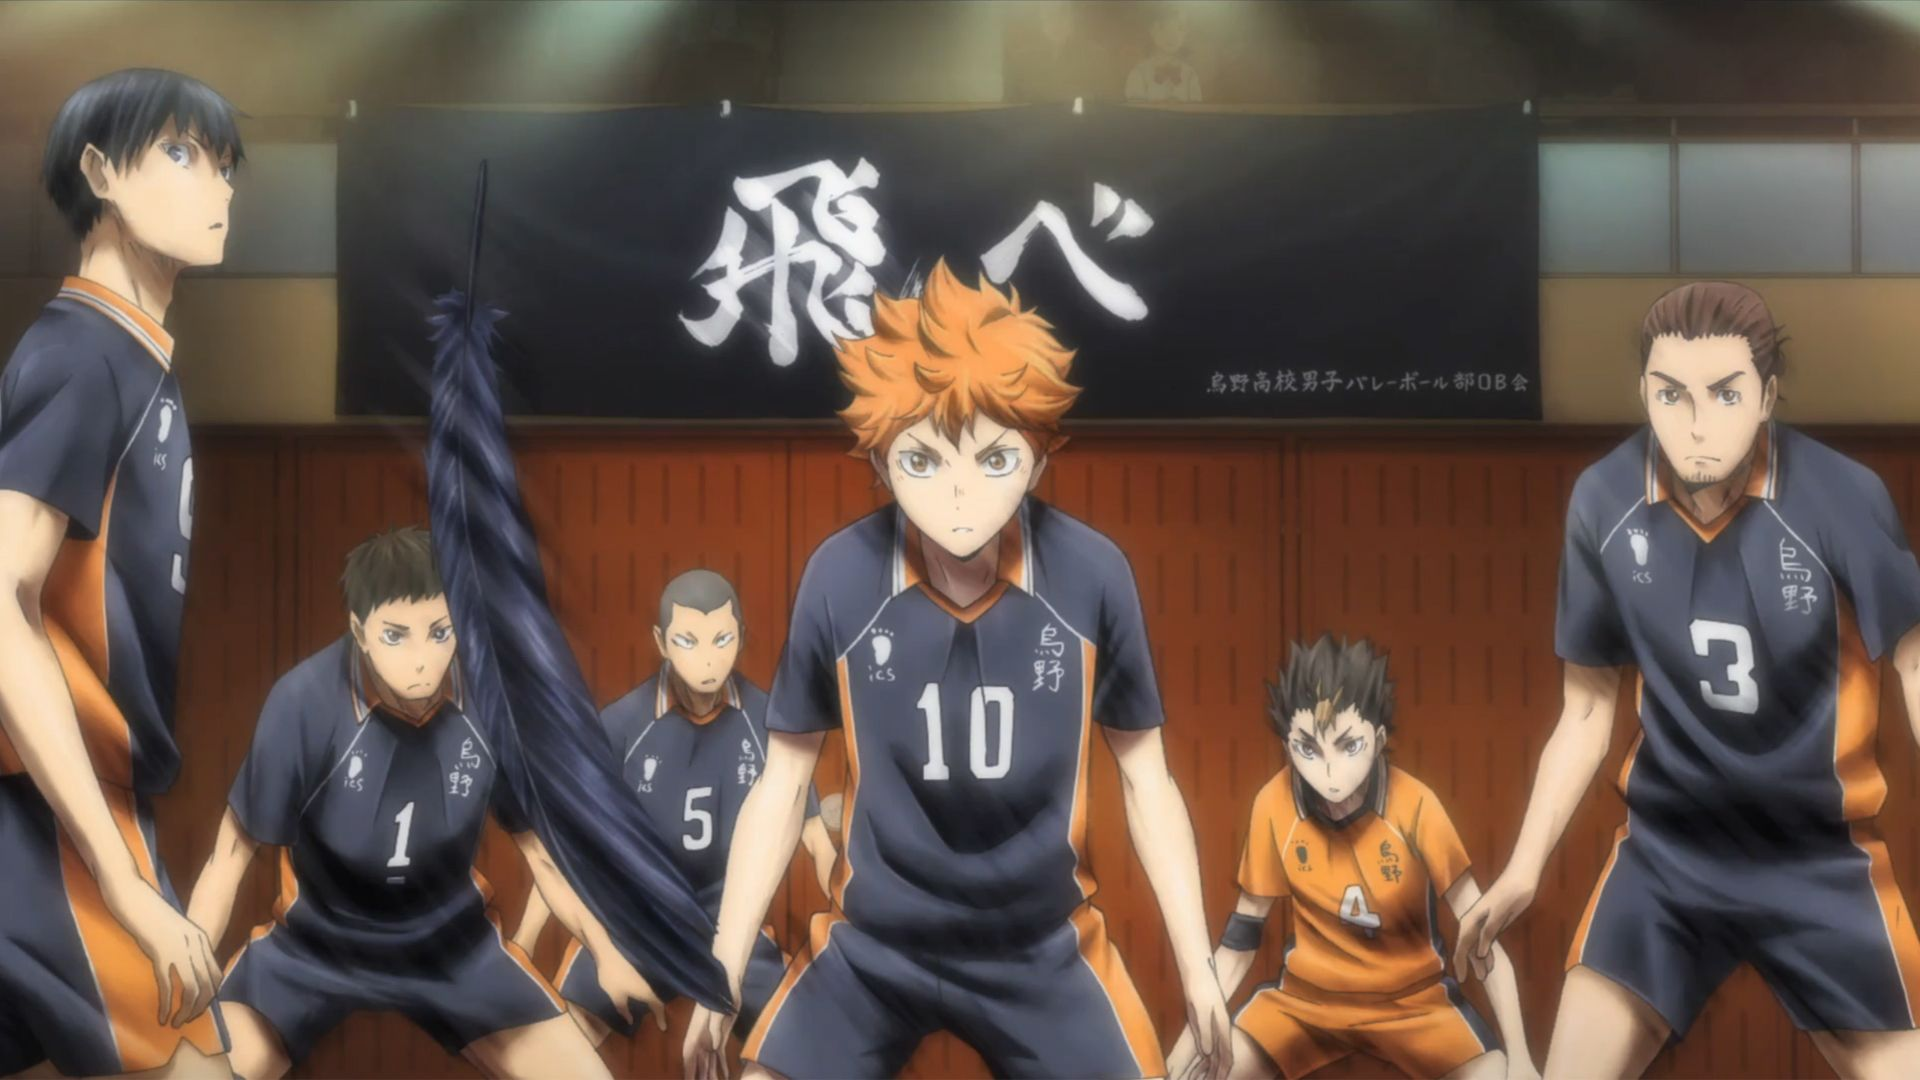 Fly Haikyu 1920x1080 Desktop Need Iphone 6s Plus Wallpaper Background For Iphone6splus Follow Iphone 6s Plus 3 In 2020 Haikyuu Wallpaper Haikyuu Haikyu